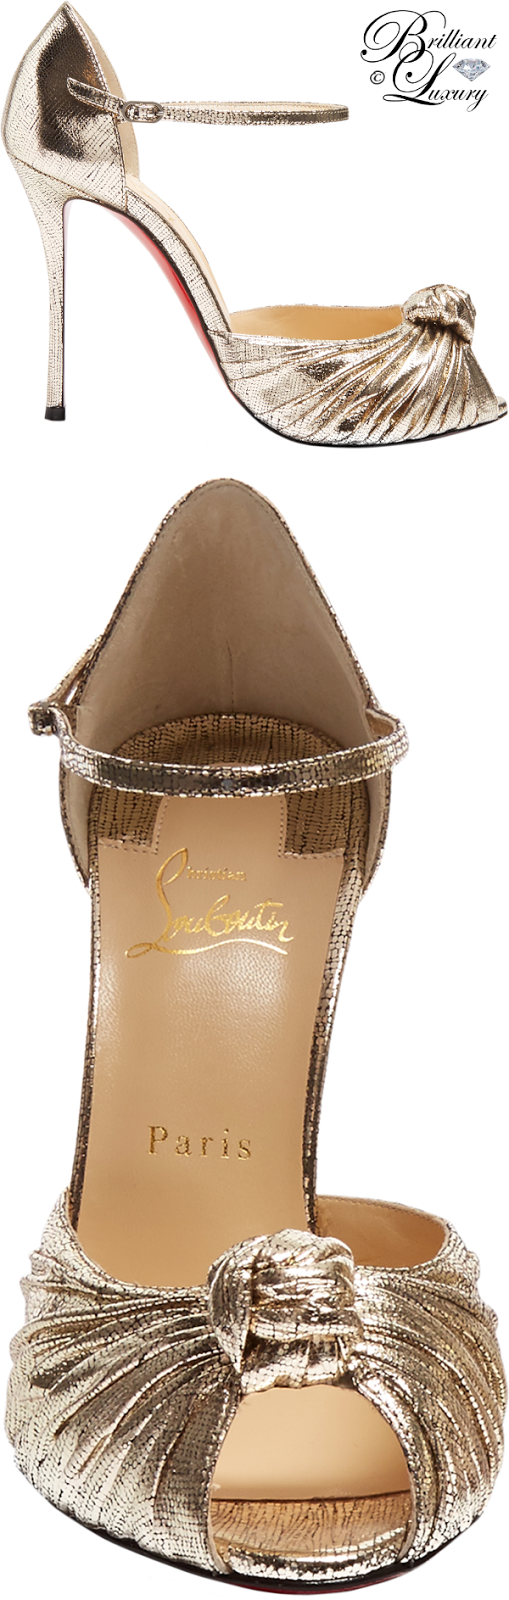 Brilliant Luxury ♦ Christian Louboutin Marchavekel Sandals